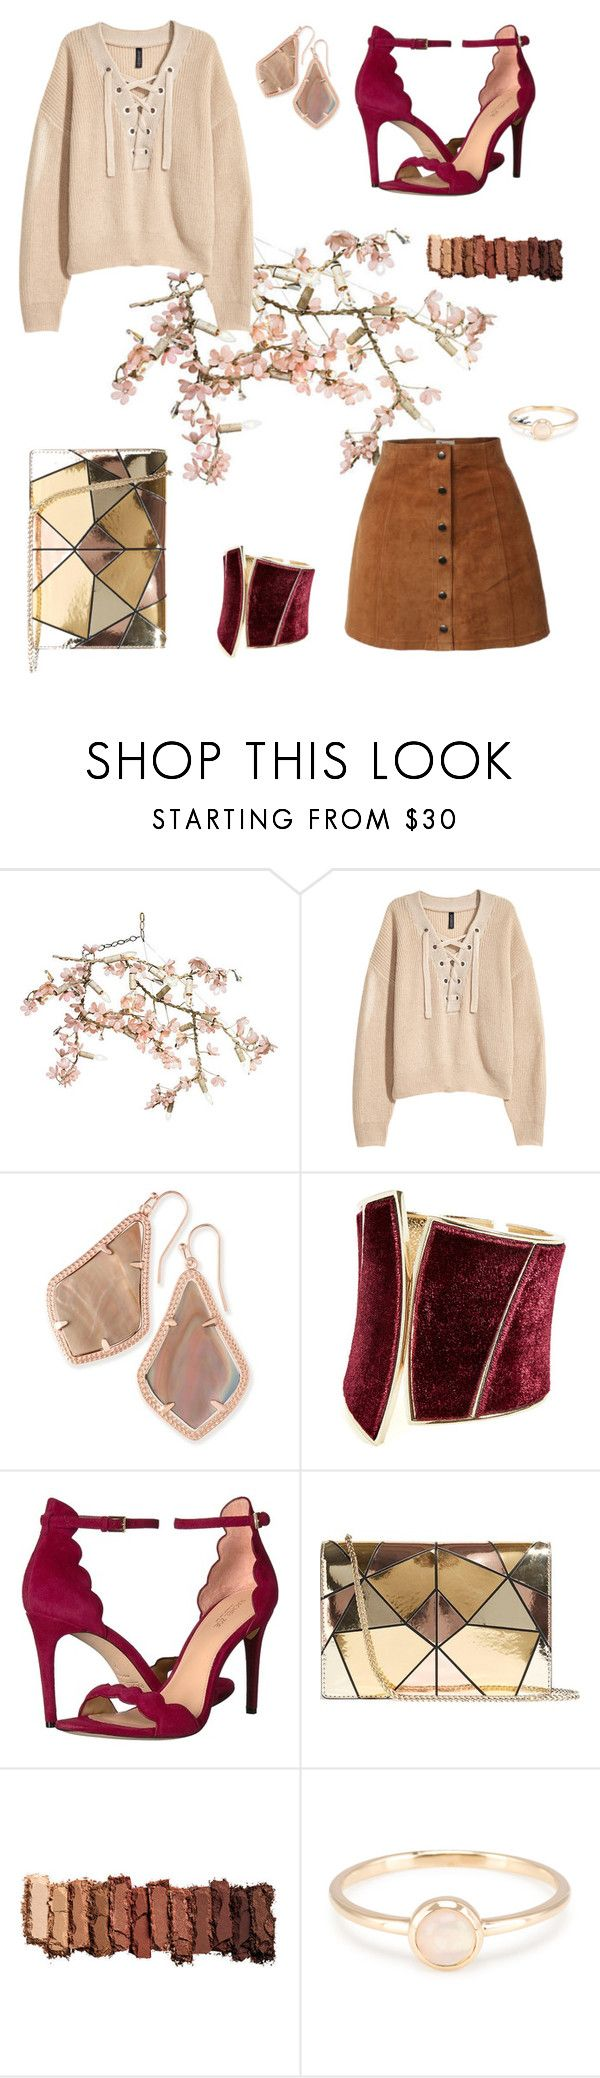 """Untitled #30"" by scodinoa ❤ liked on Polyvore featuring Canopy Designs, H&M, Kendra Scott, GUESS by Marciano, Rachel Zoe, Karen Millen and Urban Decay"